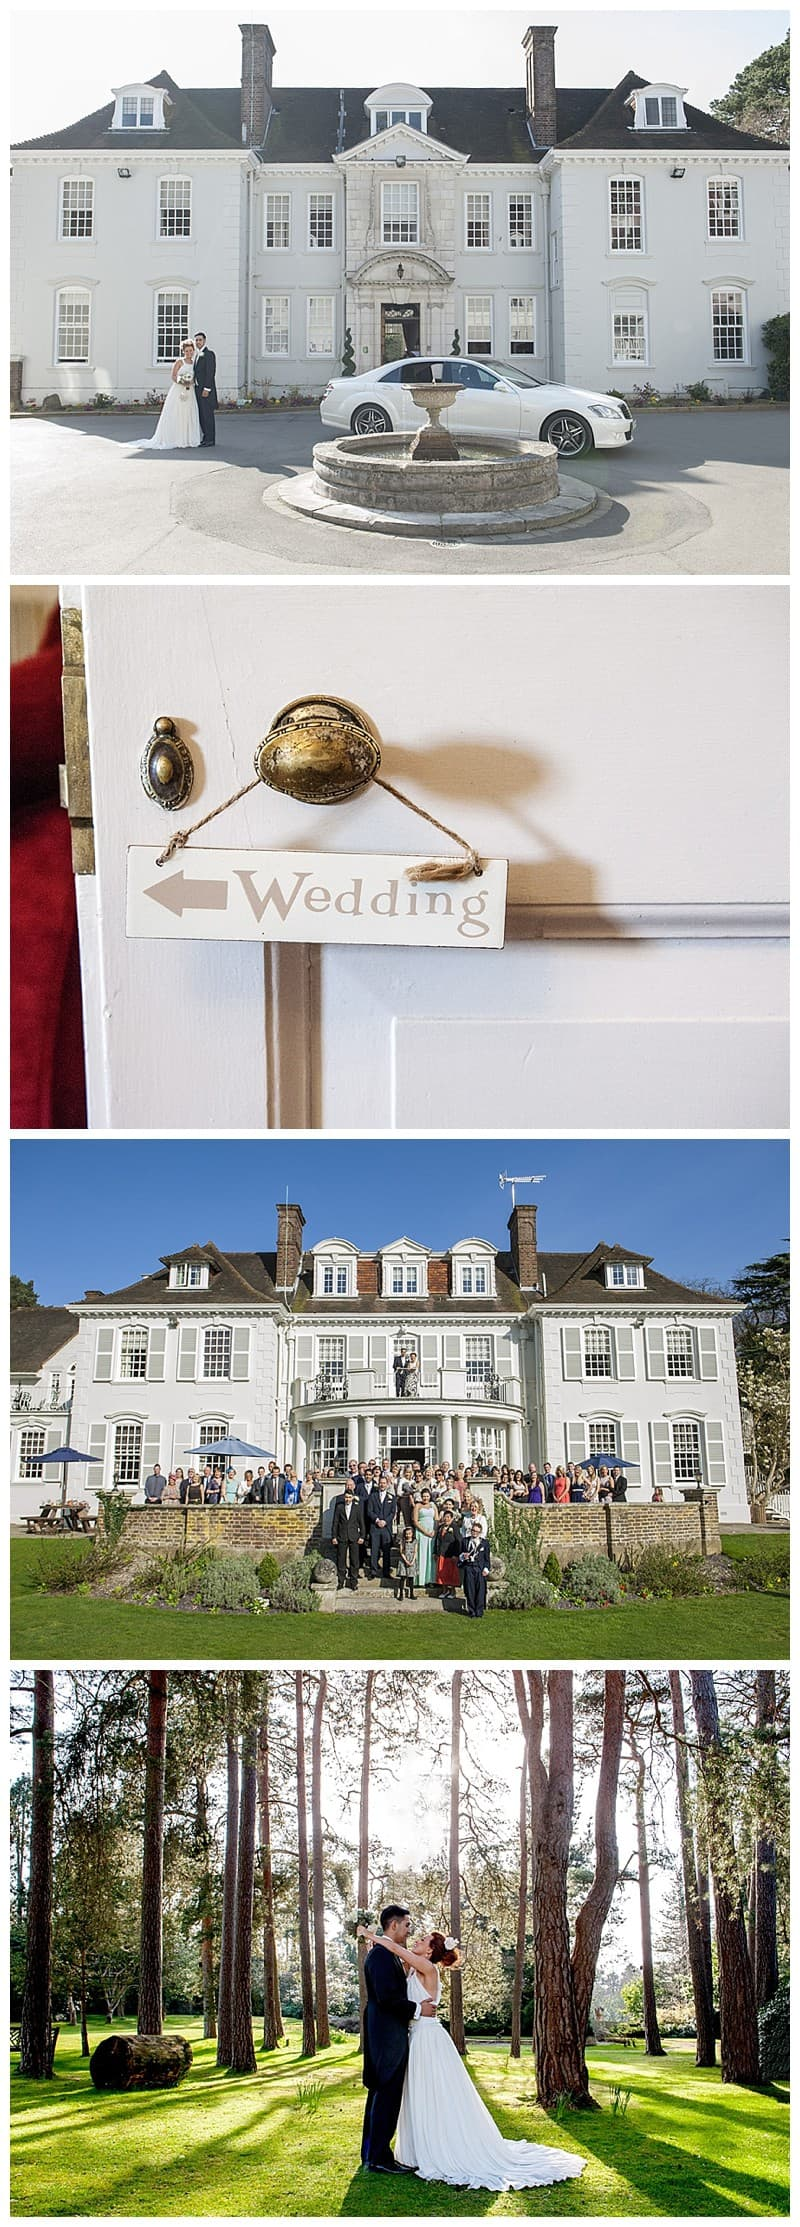 Stuart & Hayley De Vere's Hotel, Surrey Wedding, Benjamin Wetherall Photography | London Wedding Photography0013.2